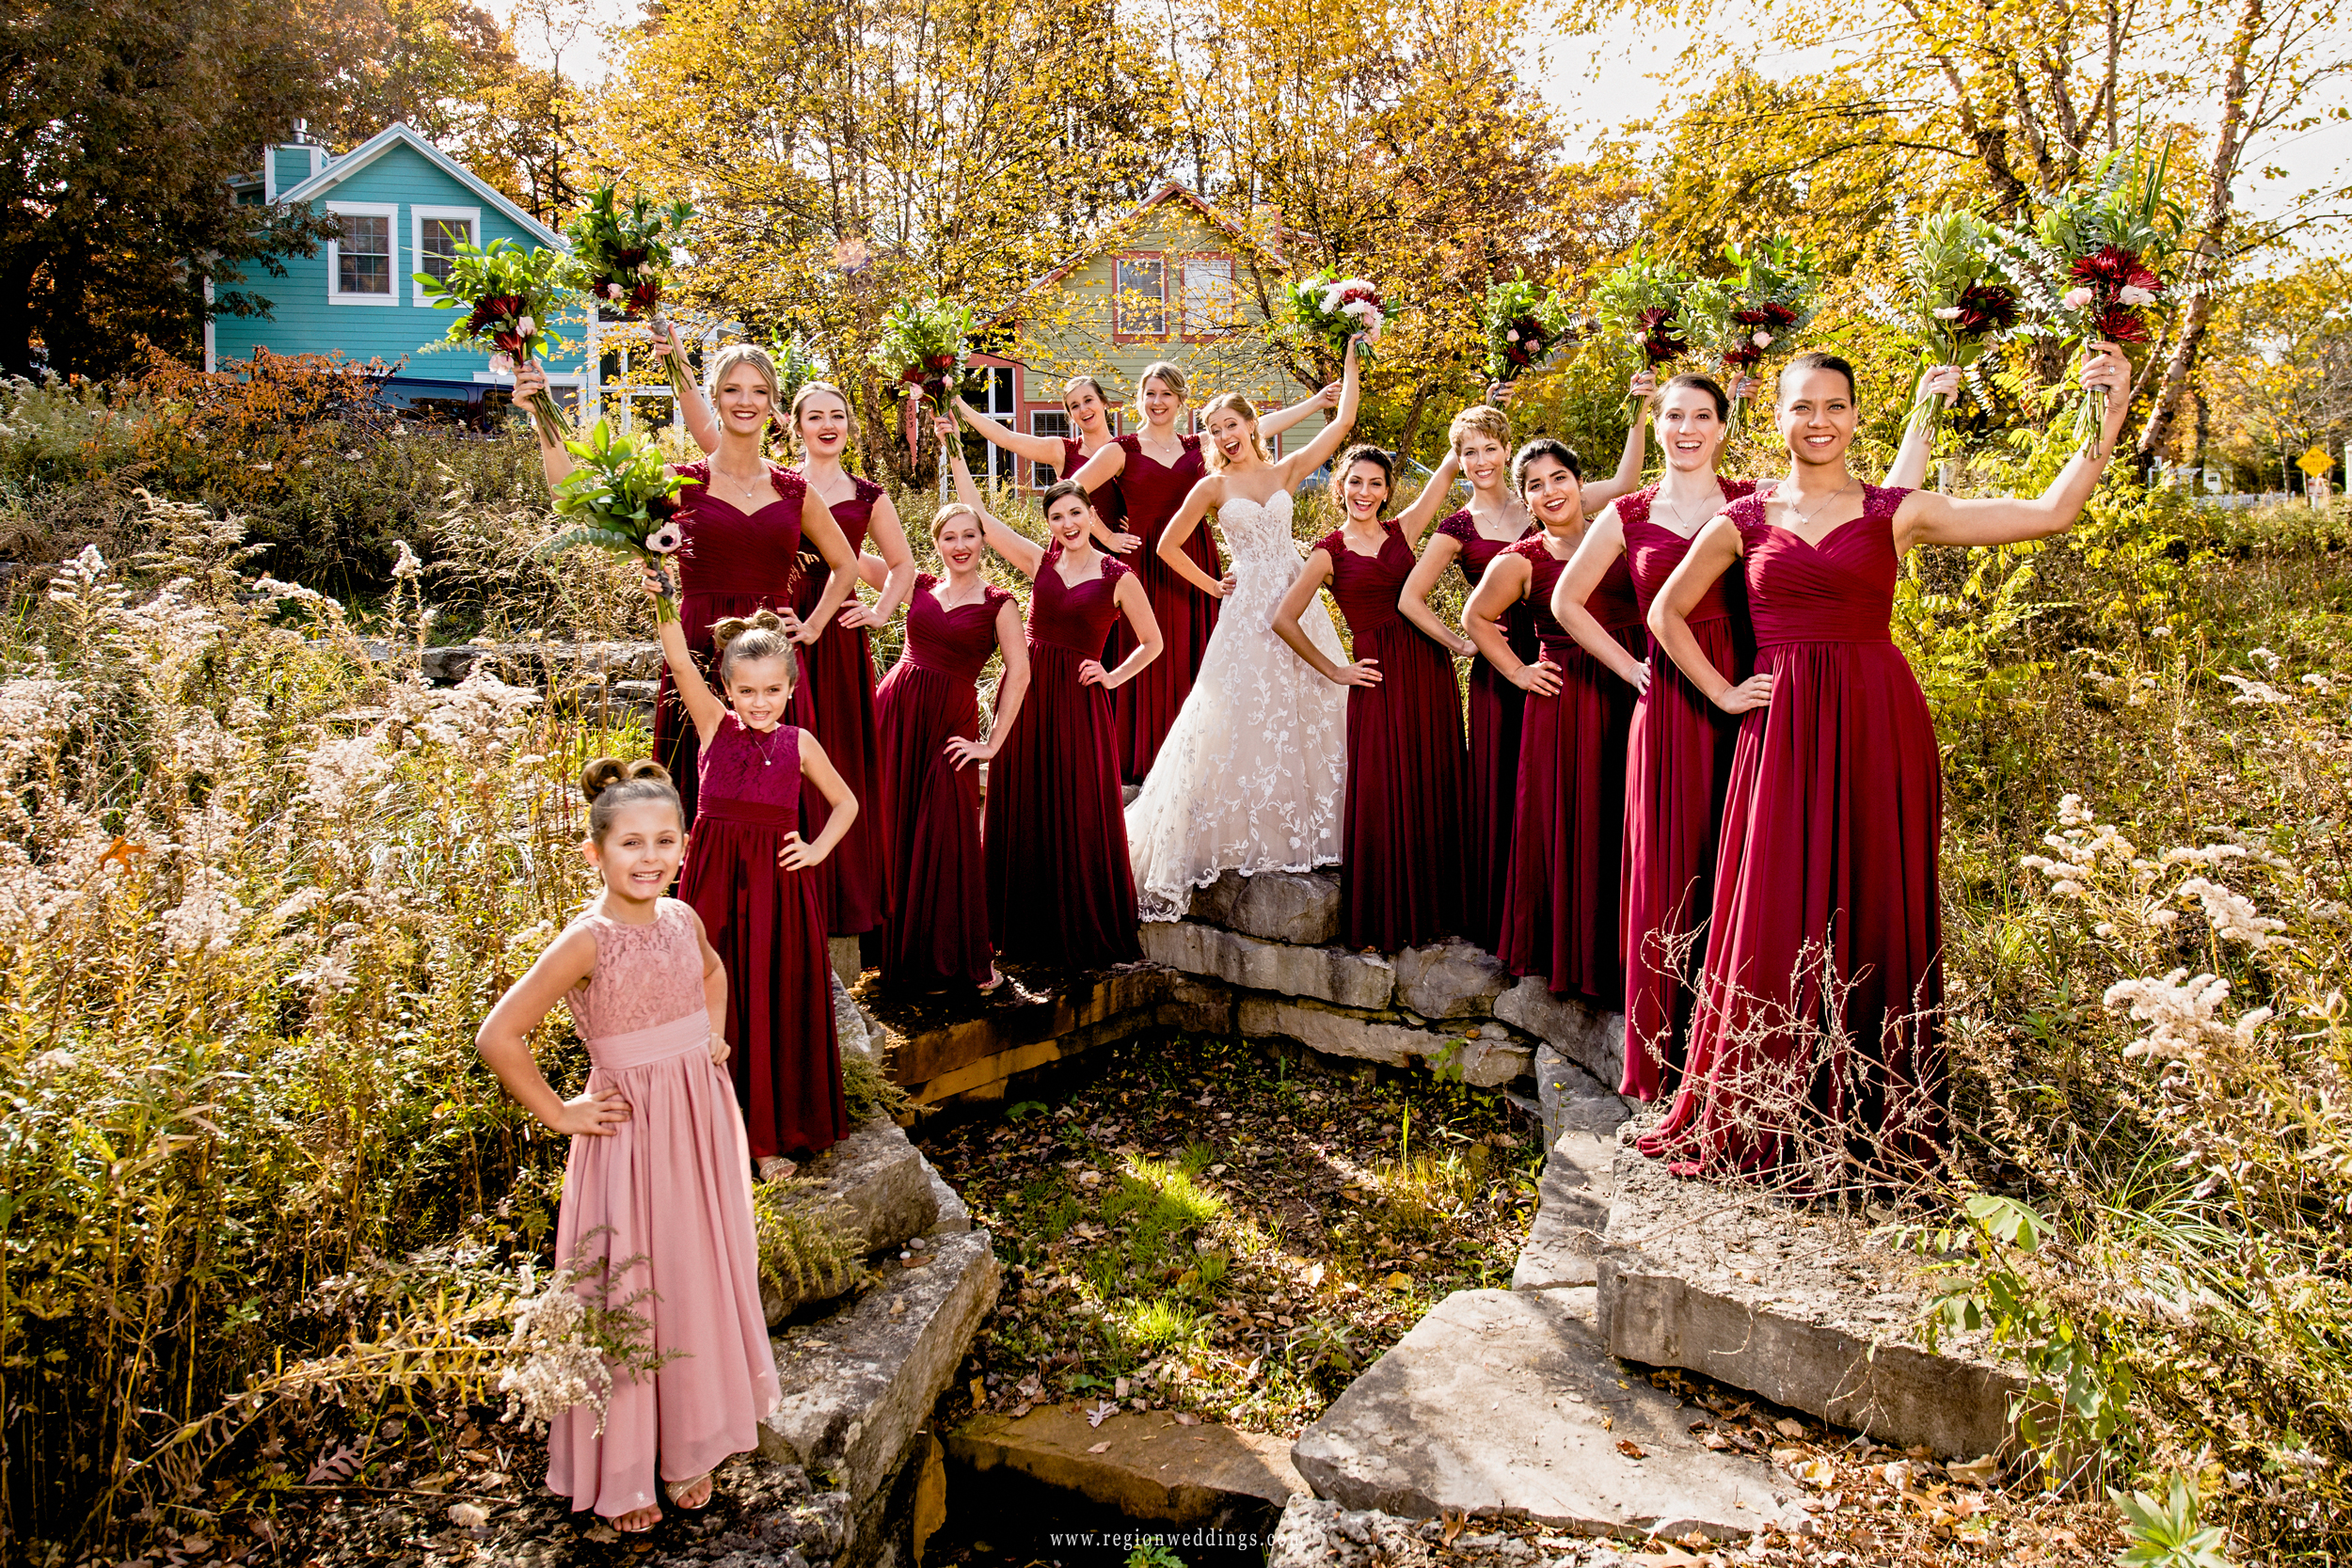 The bride and her bridesmaids cheer.